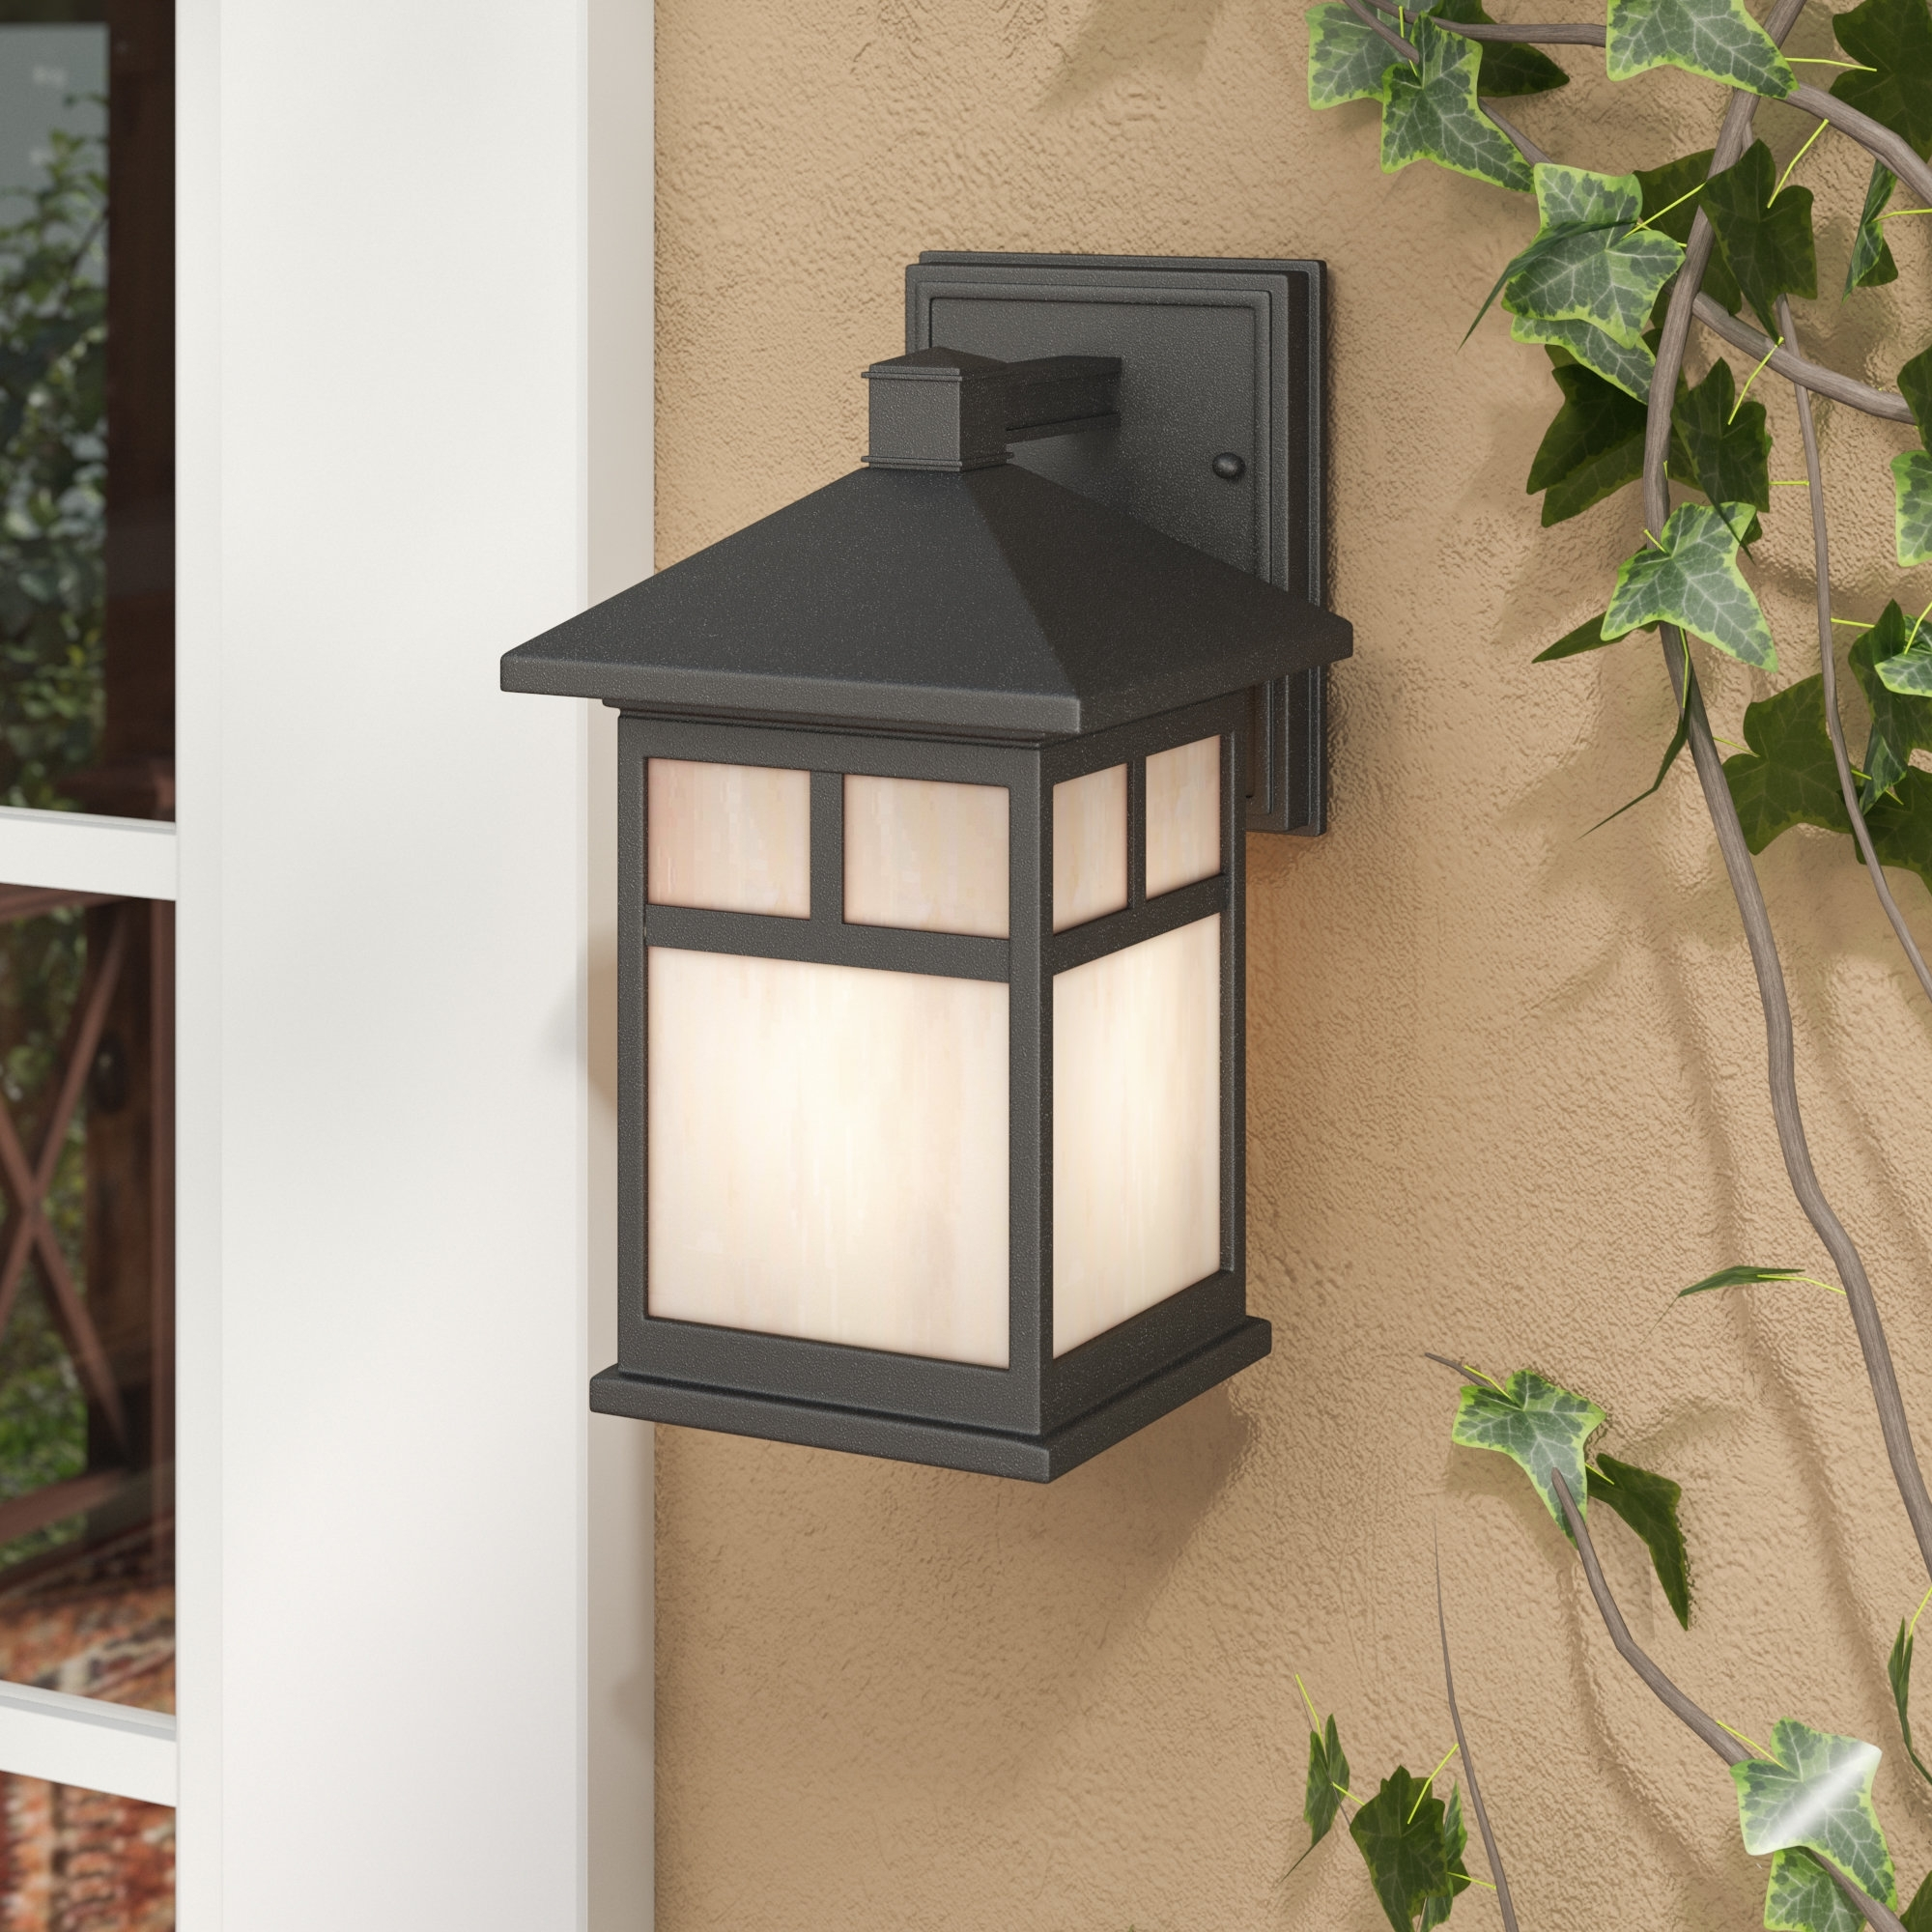 2018 Loon Peak Burtundy 1 Light Outdoor Wall Lantern & Reviews (View 1 of 20)